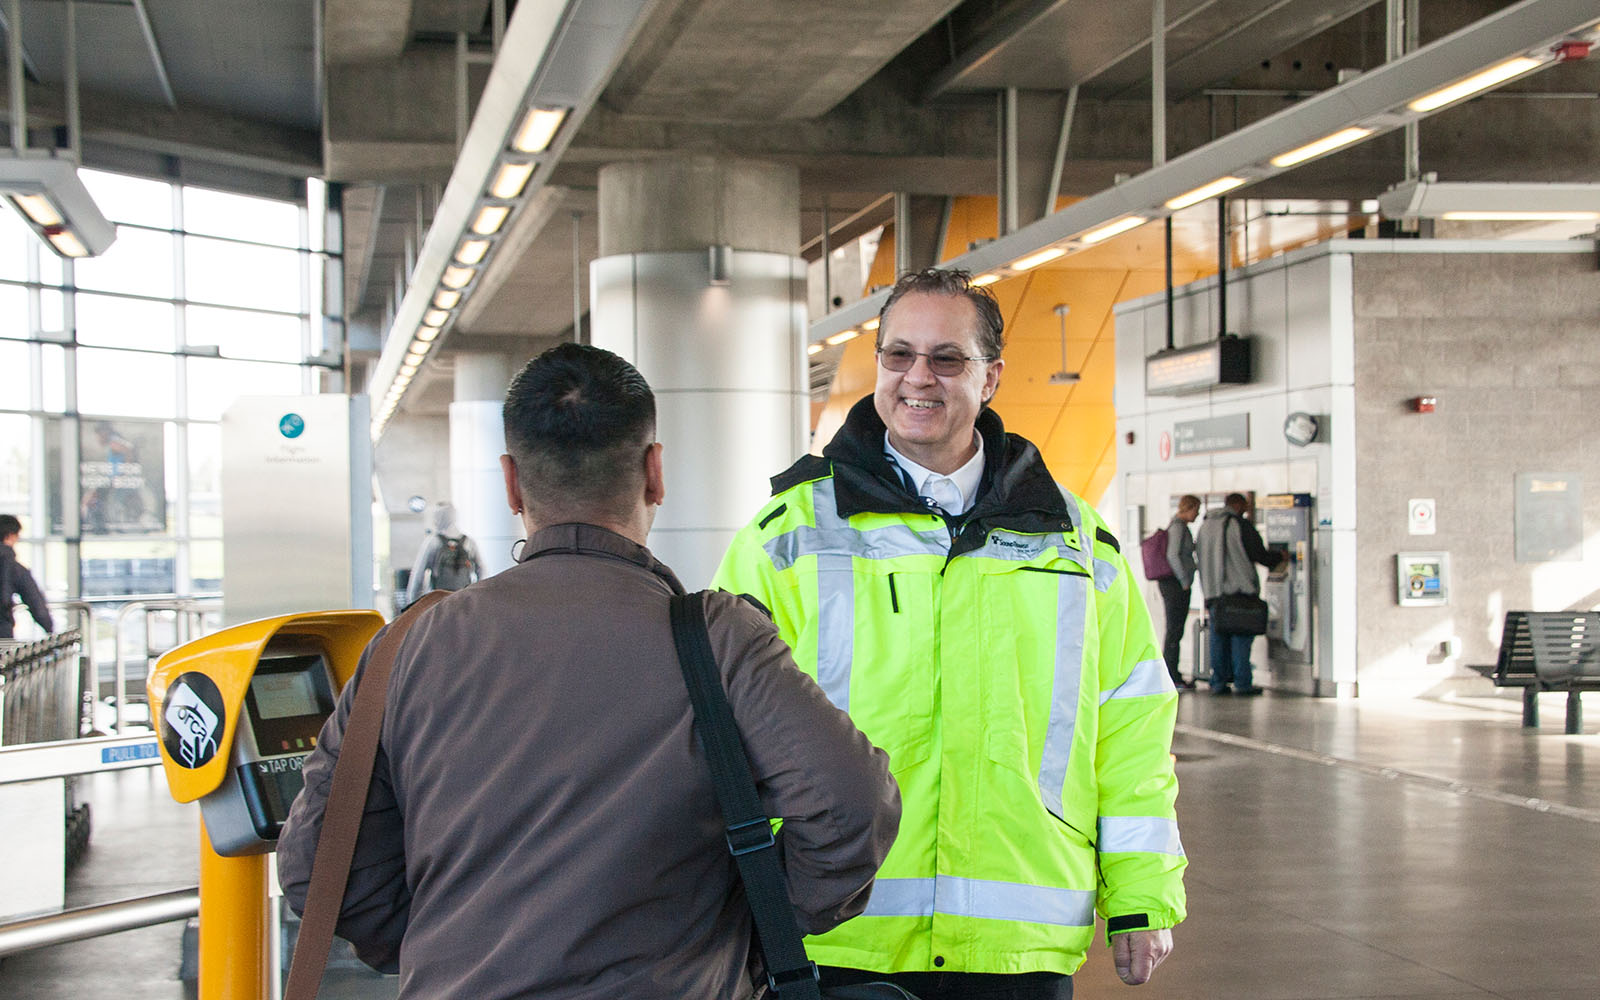 Sound Transit Station Agent helps travelers get from Sea-Tac Airport to Link light rail